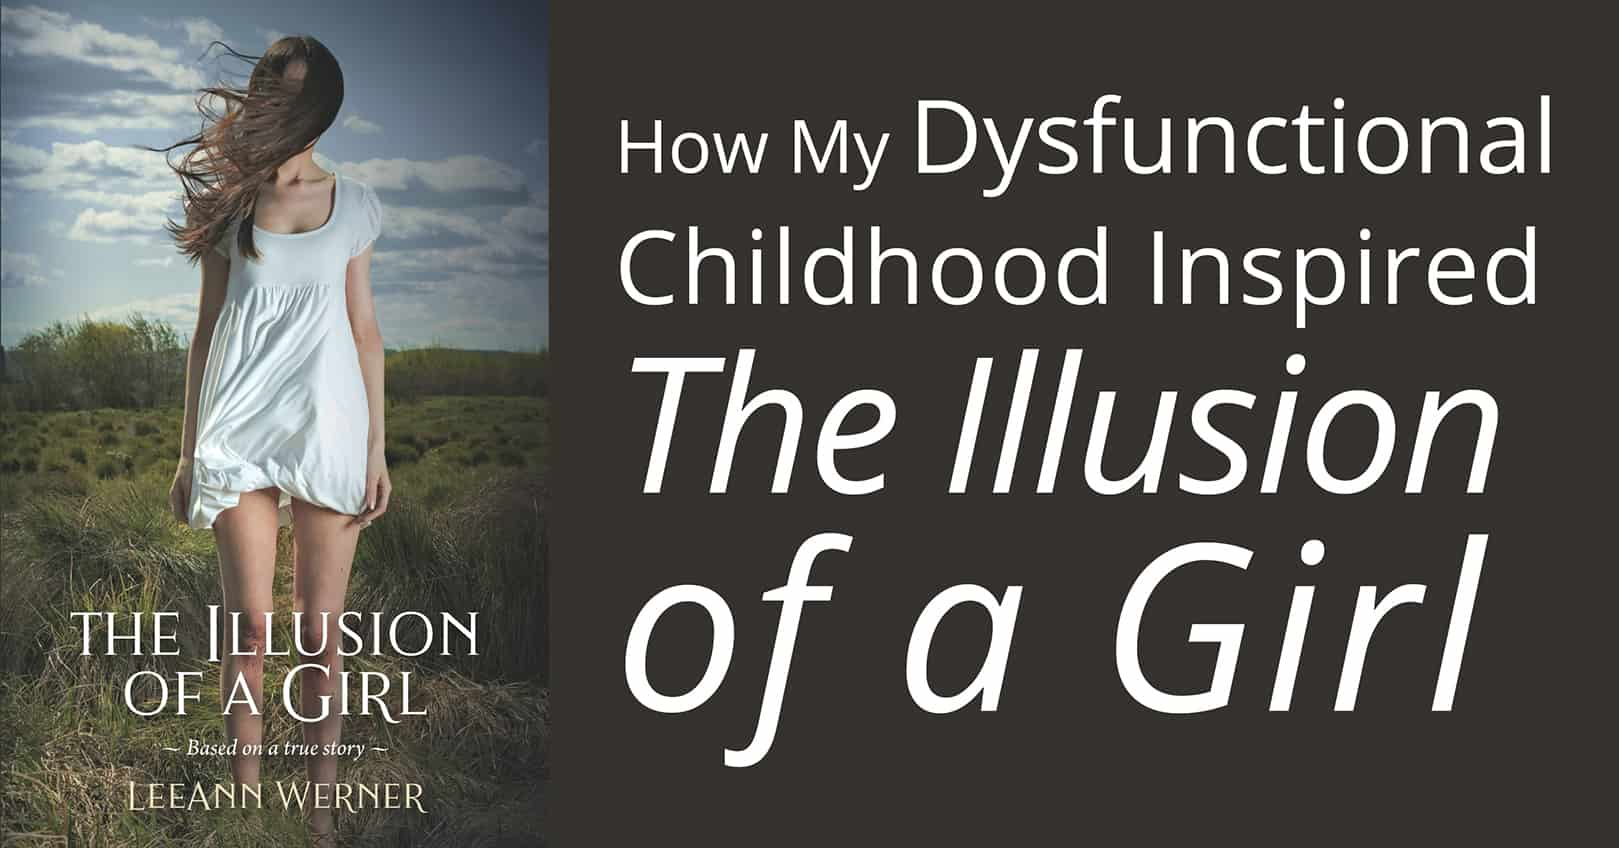 dysfunction childhood inspired Illusions of a Girl